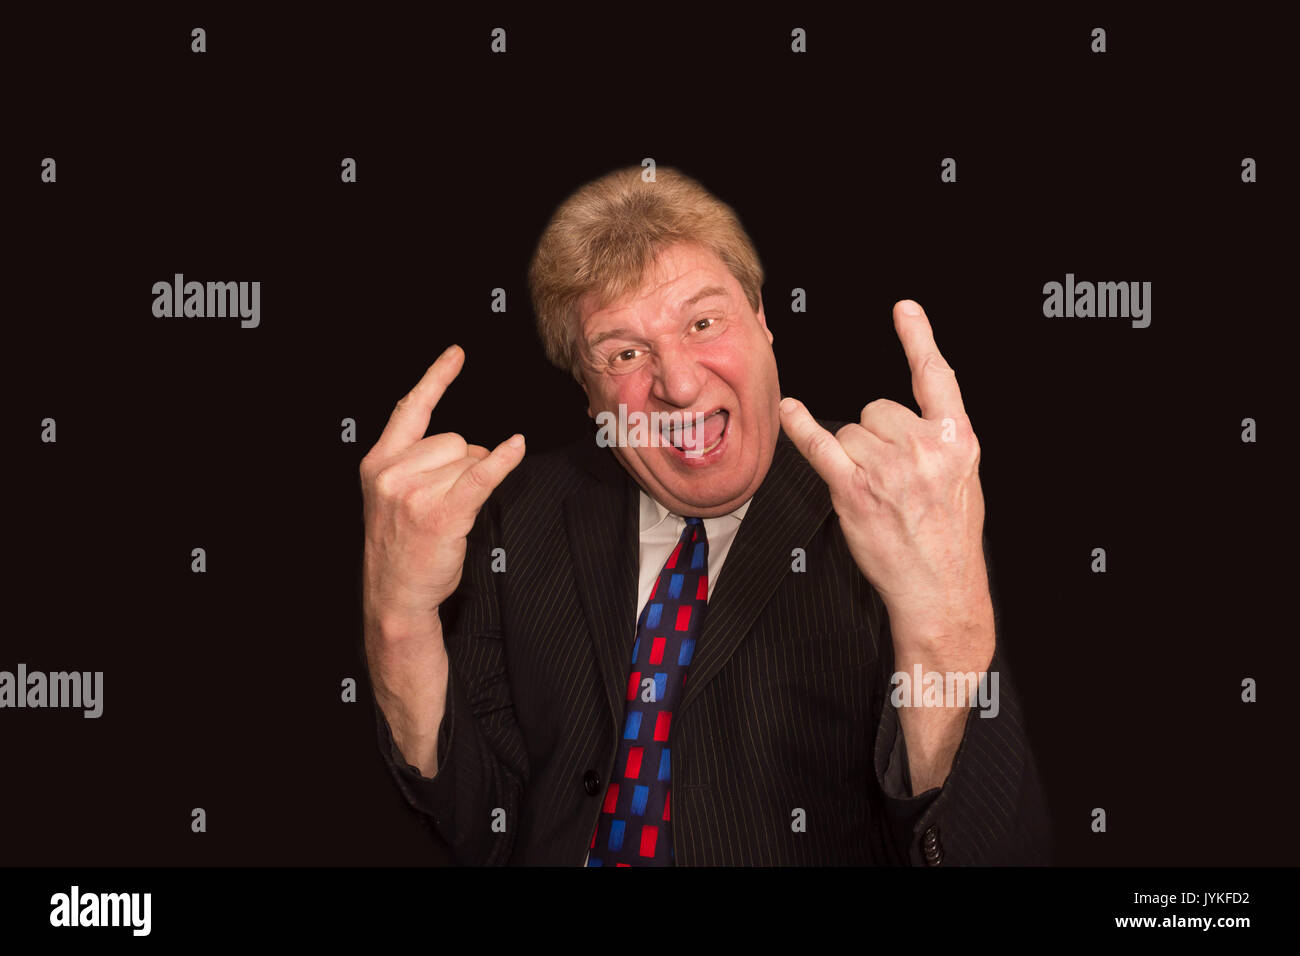 Devil hand sign stock photos devil hand sign stock images alamy elderly man making a horns gesture depicting heavy metal rock music stock image biocorpaavc Gallery